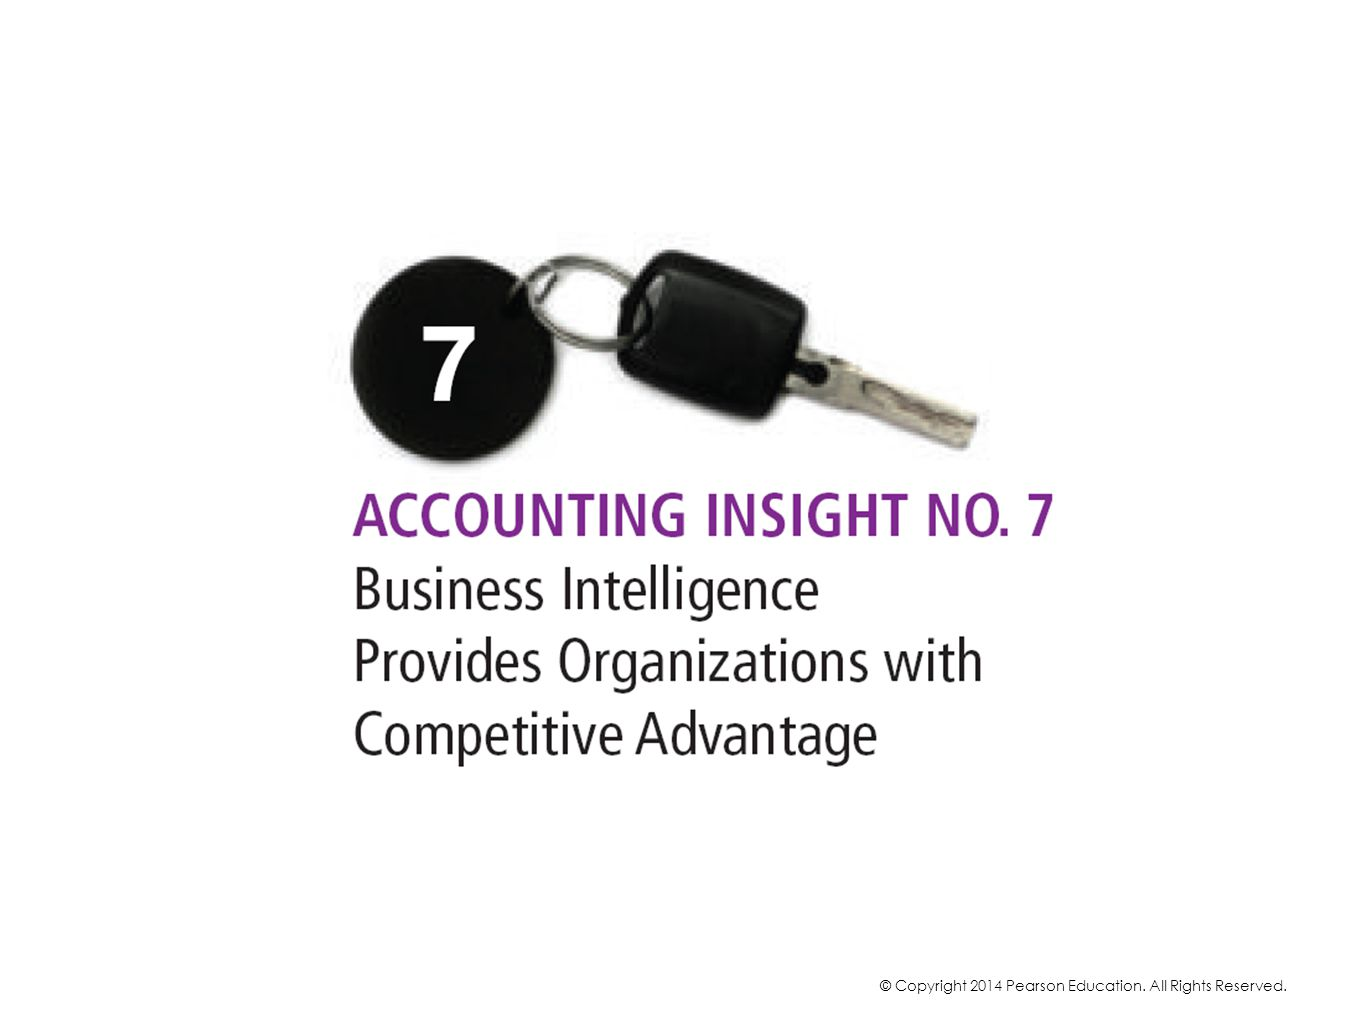 Accounting Insight No 7 relates to the A in SASSY: Analyze accounting data.